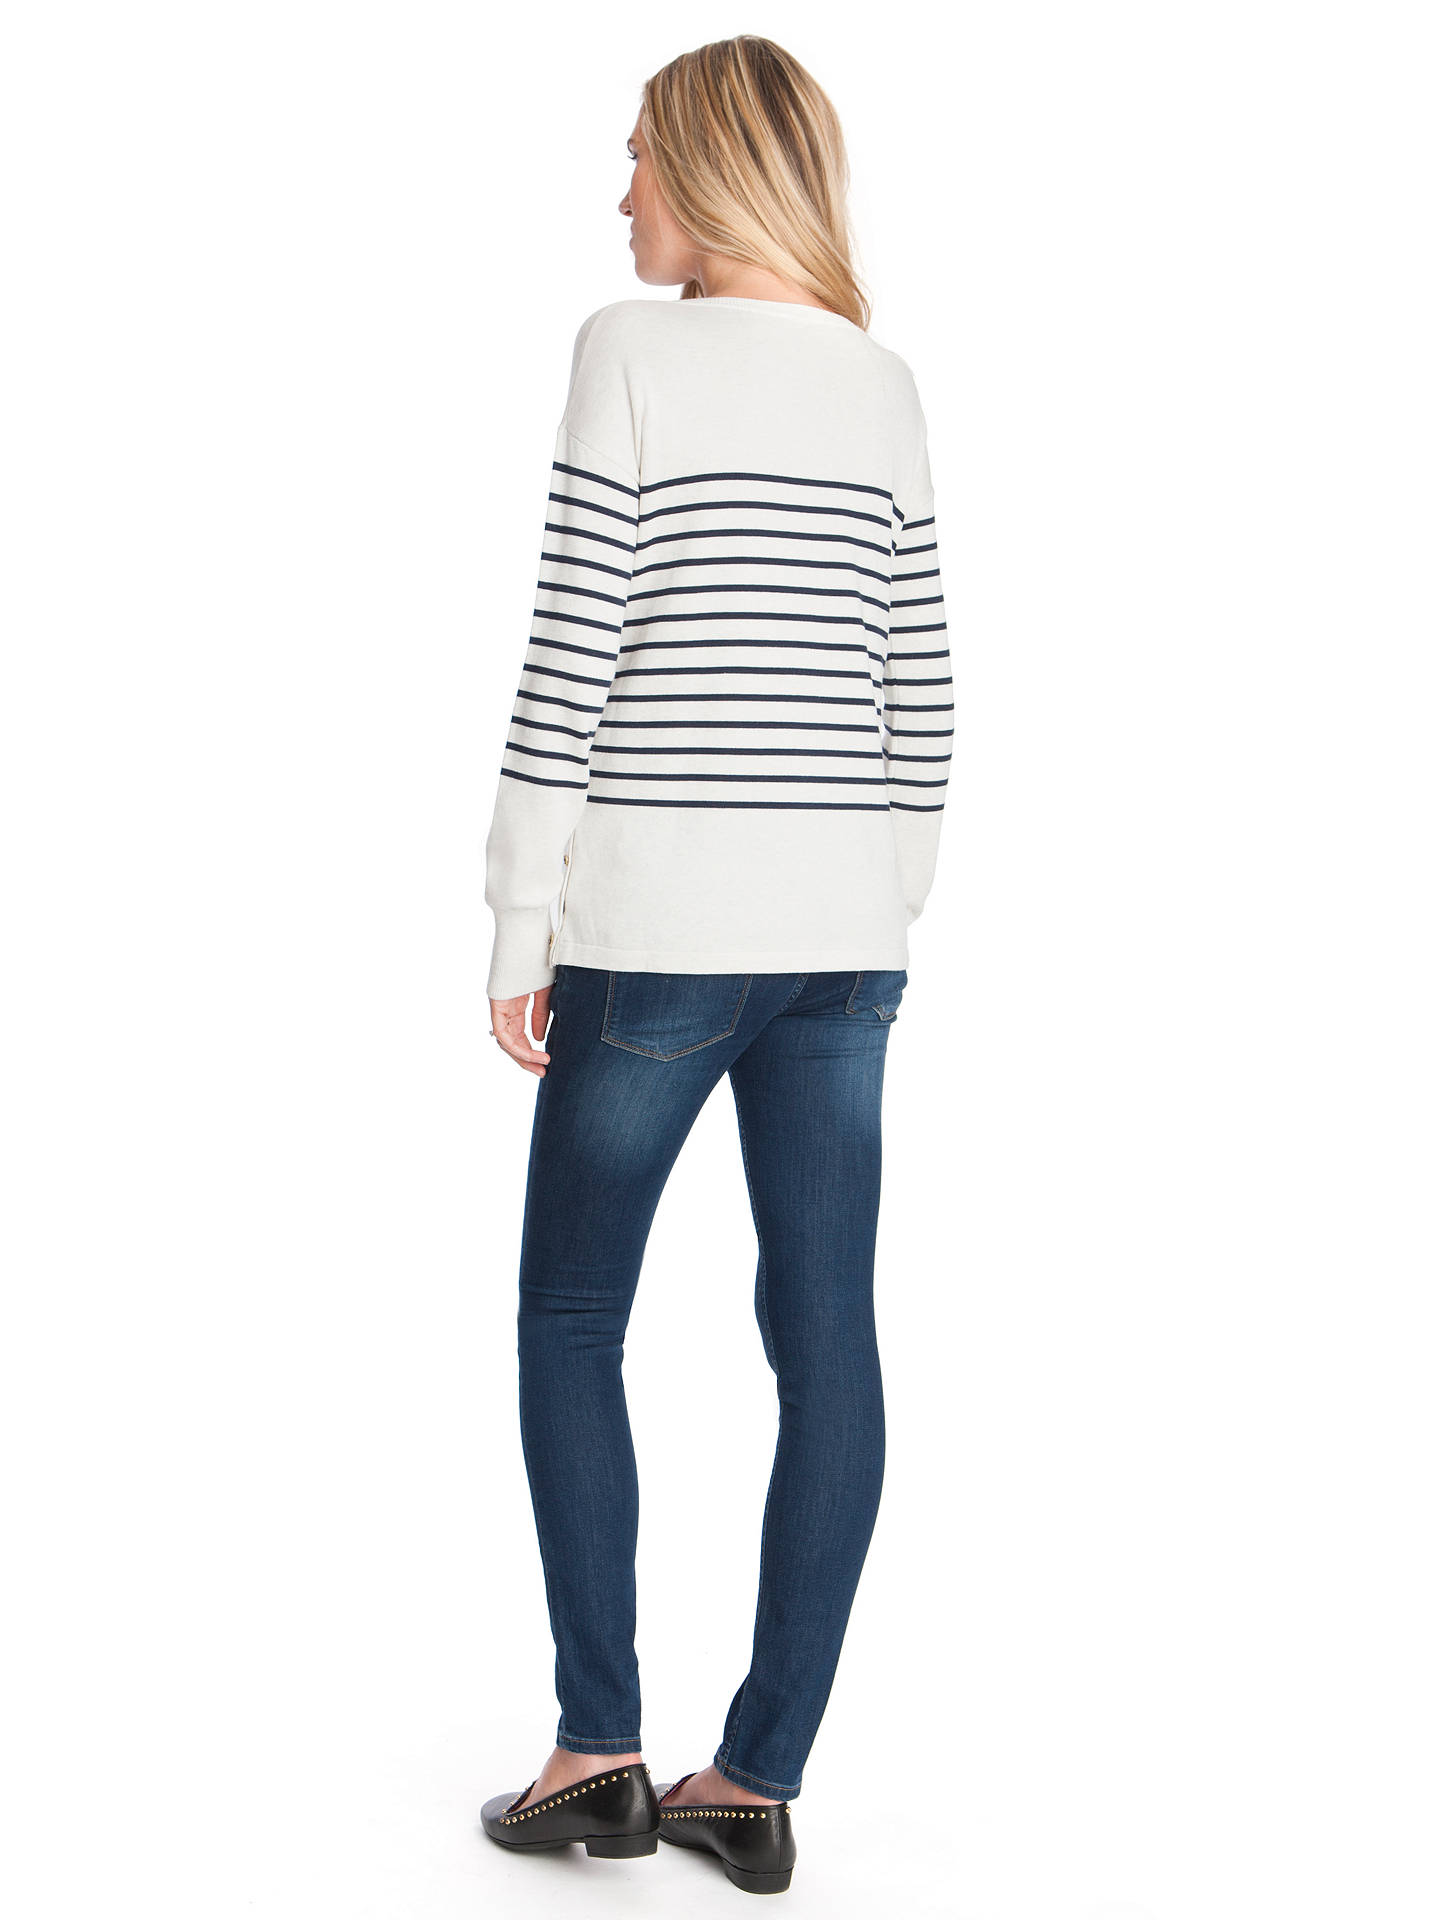 d540ffd629b20 ... Buy Séraphine Molly Breton Stripe Maternity Nursing Jumper, White/Navy,  S Online at